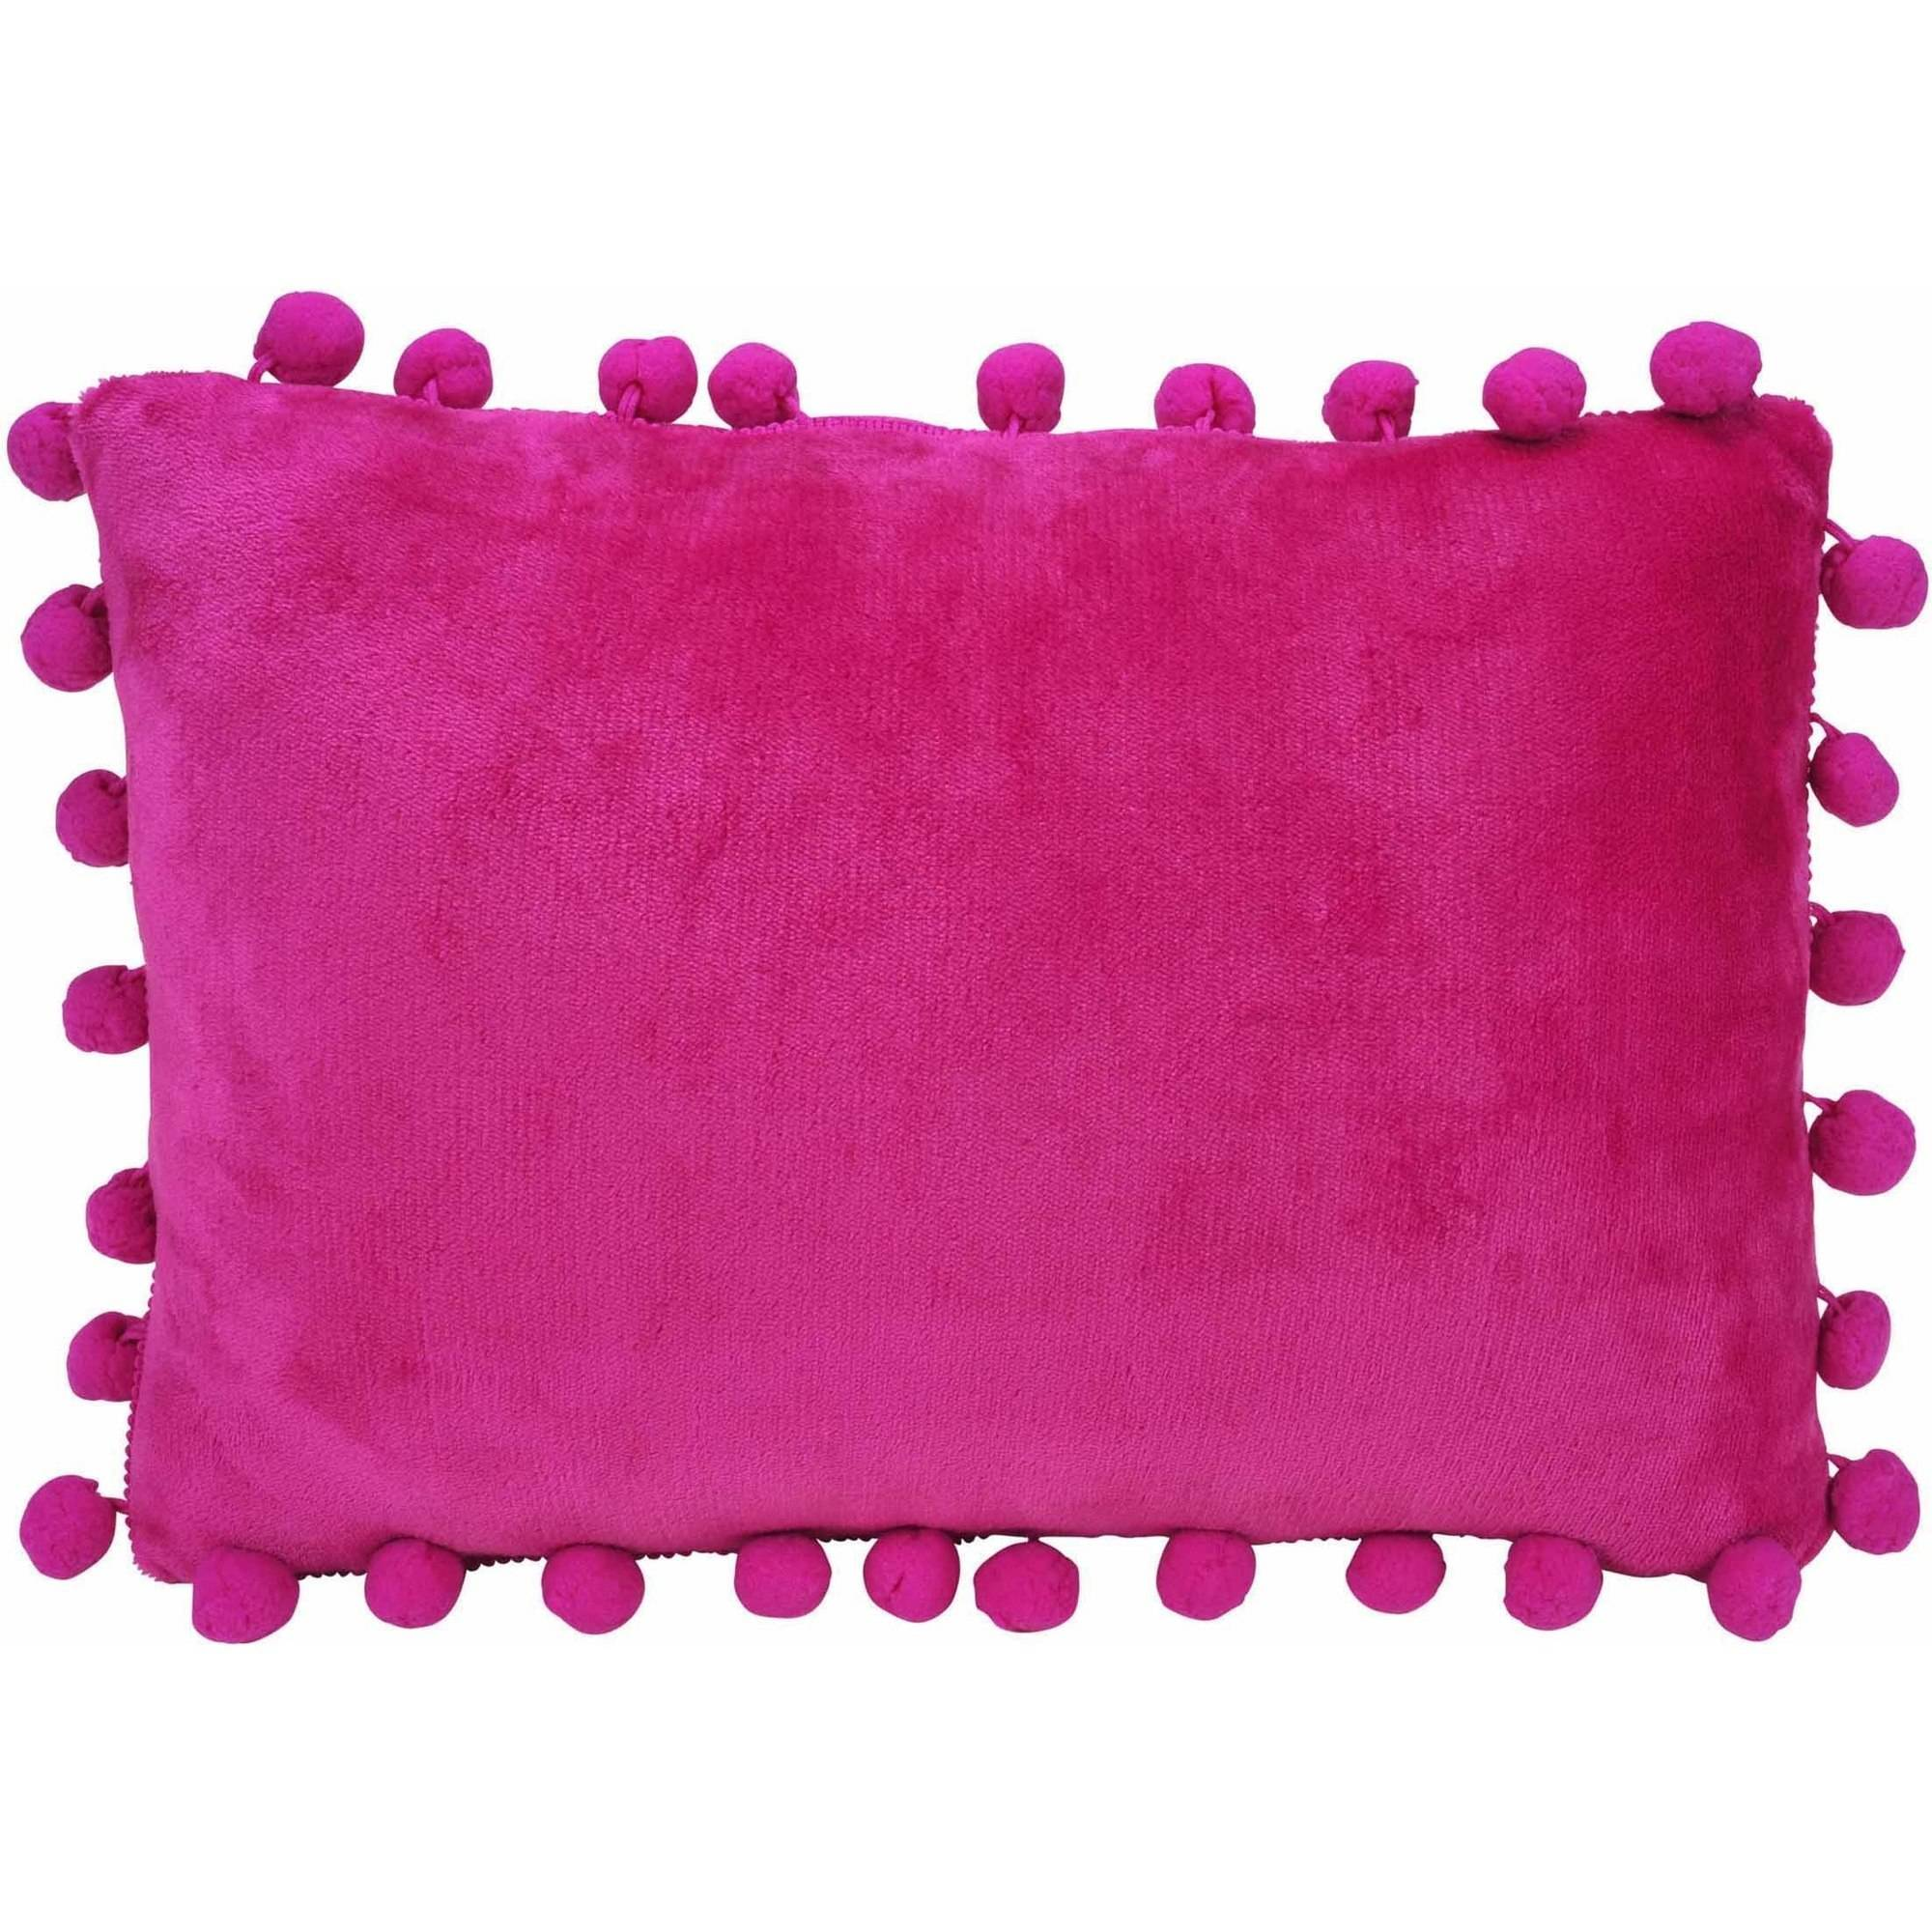 "Latitude Plush Pom Pom 12"" x 18"" Pillow"